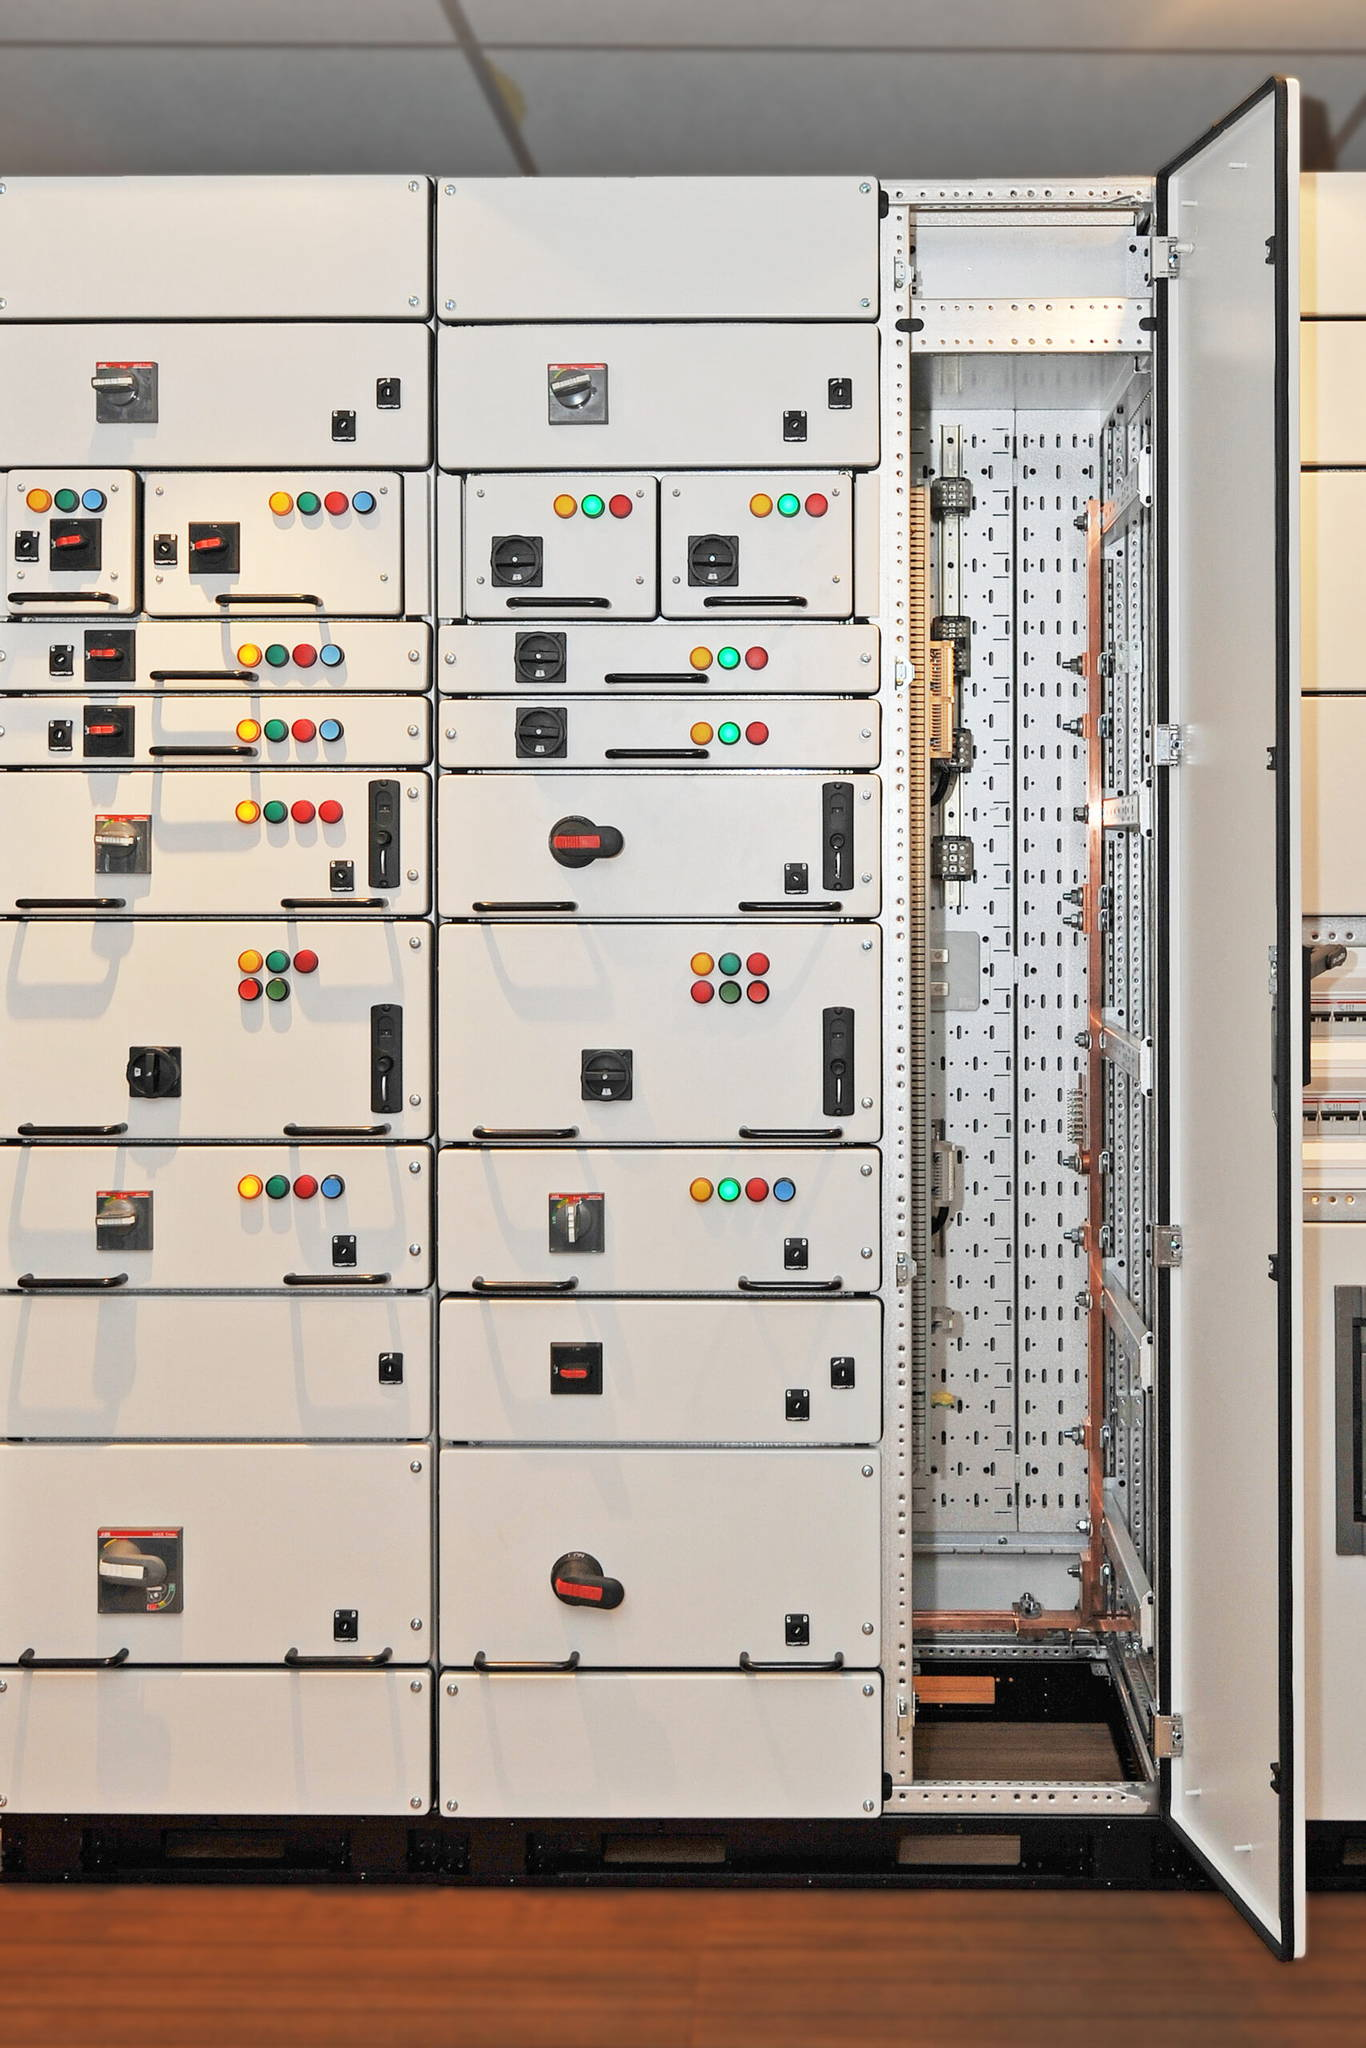 Logstrup Switchboard, WDU and others, Cabelsection